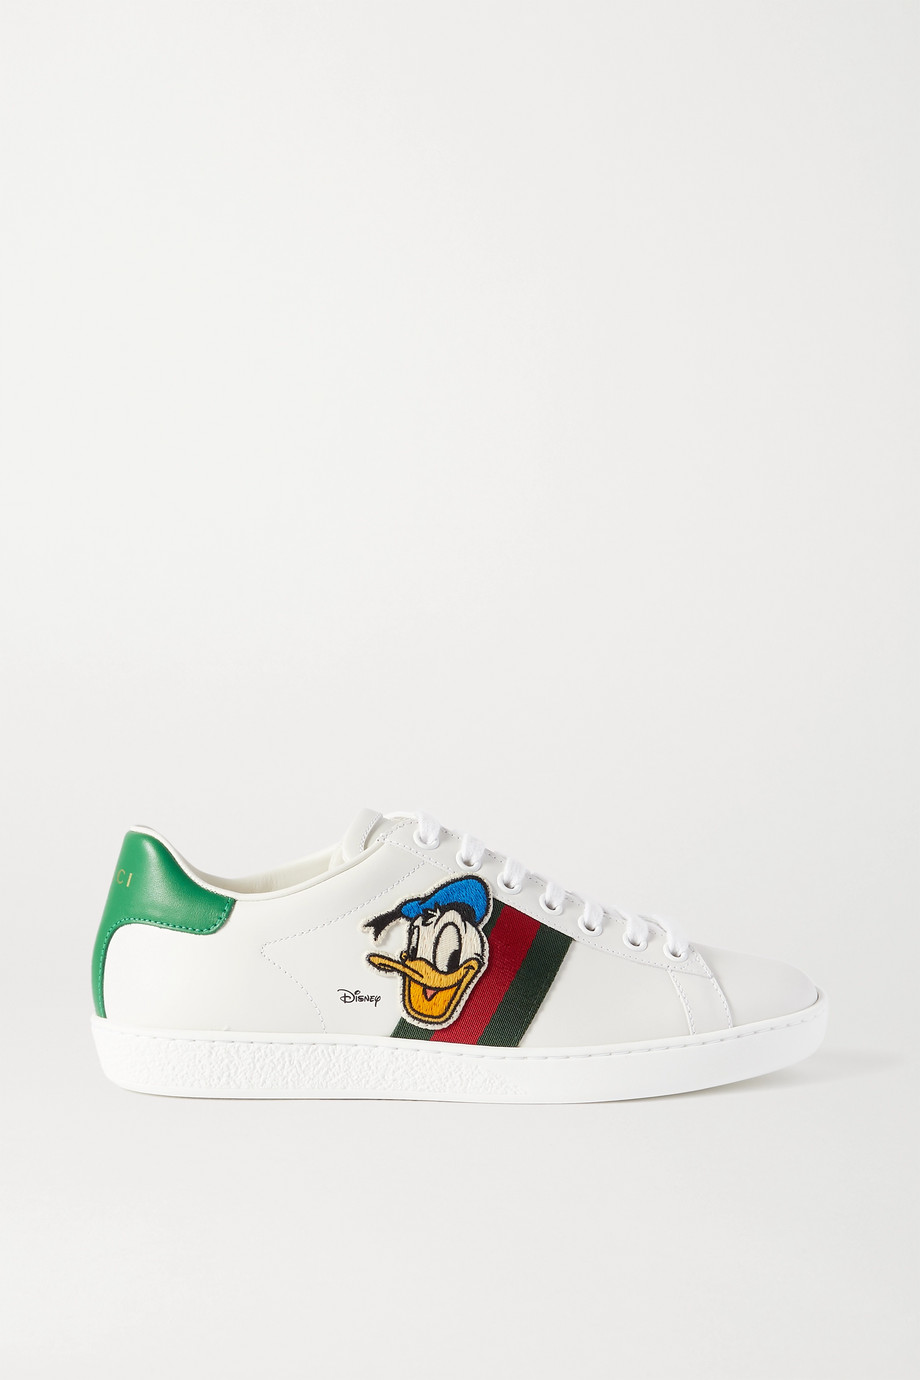 GUCCI + Disney Ace appliquéd canvas-trimmed leather sneakers